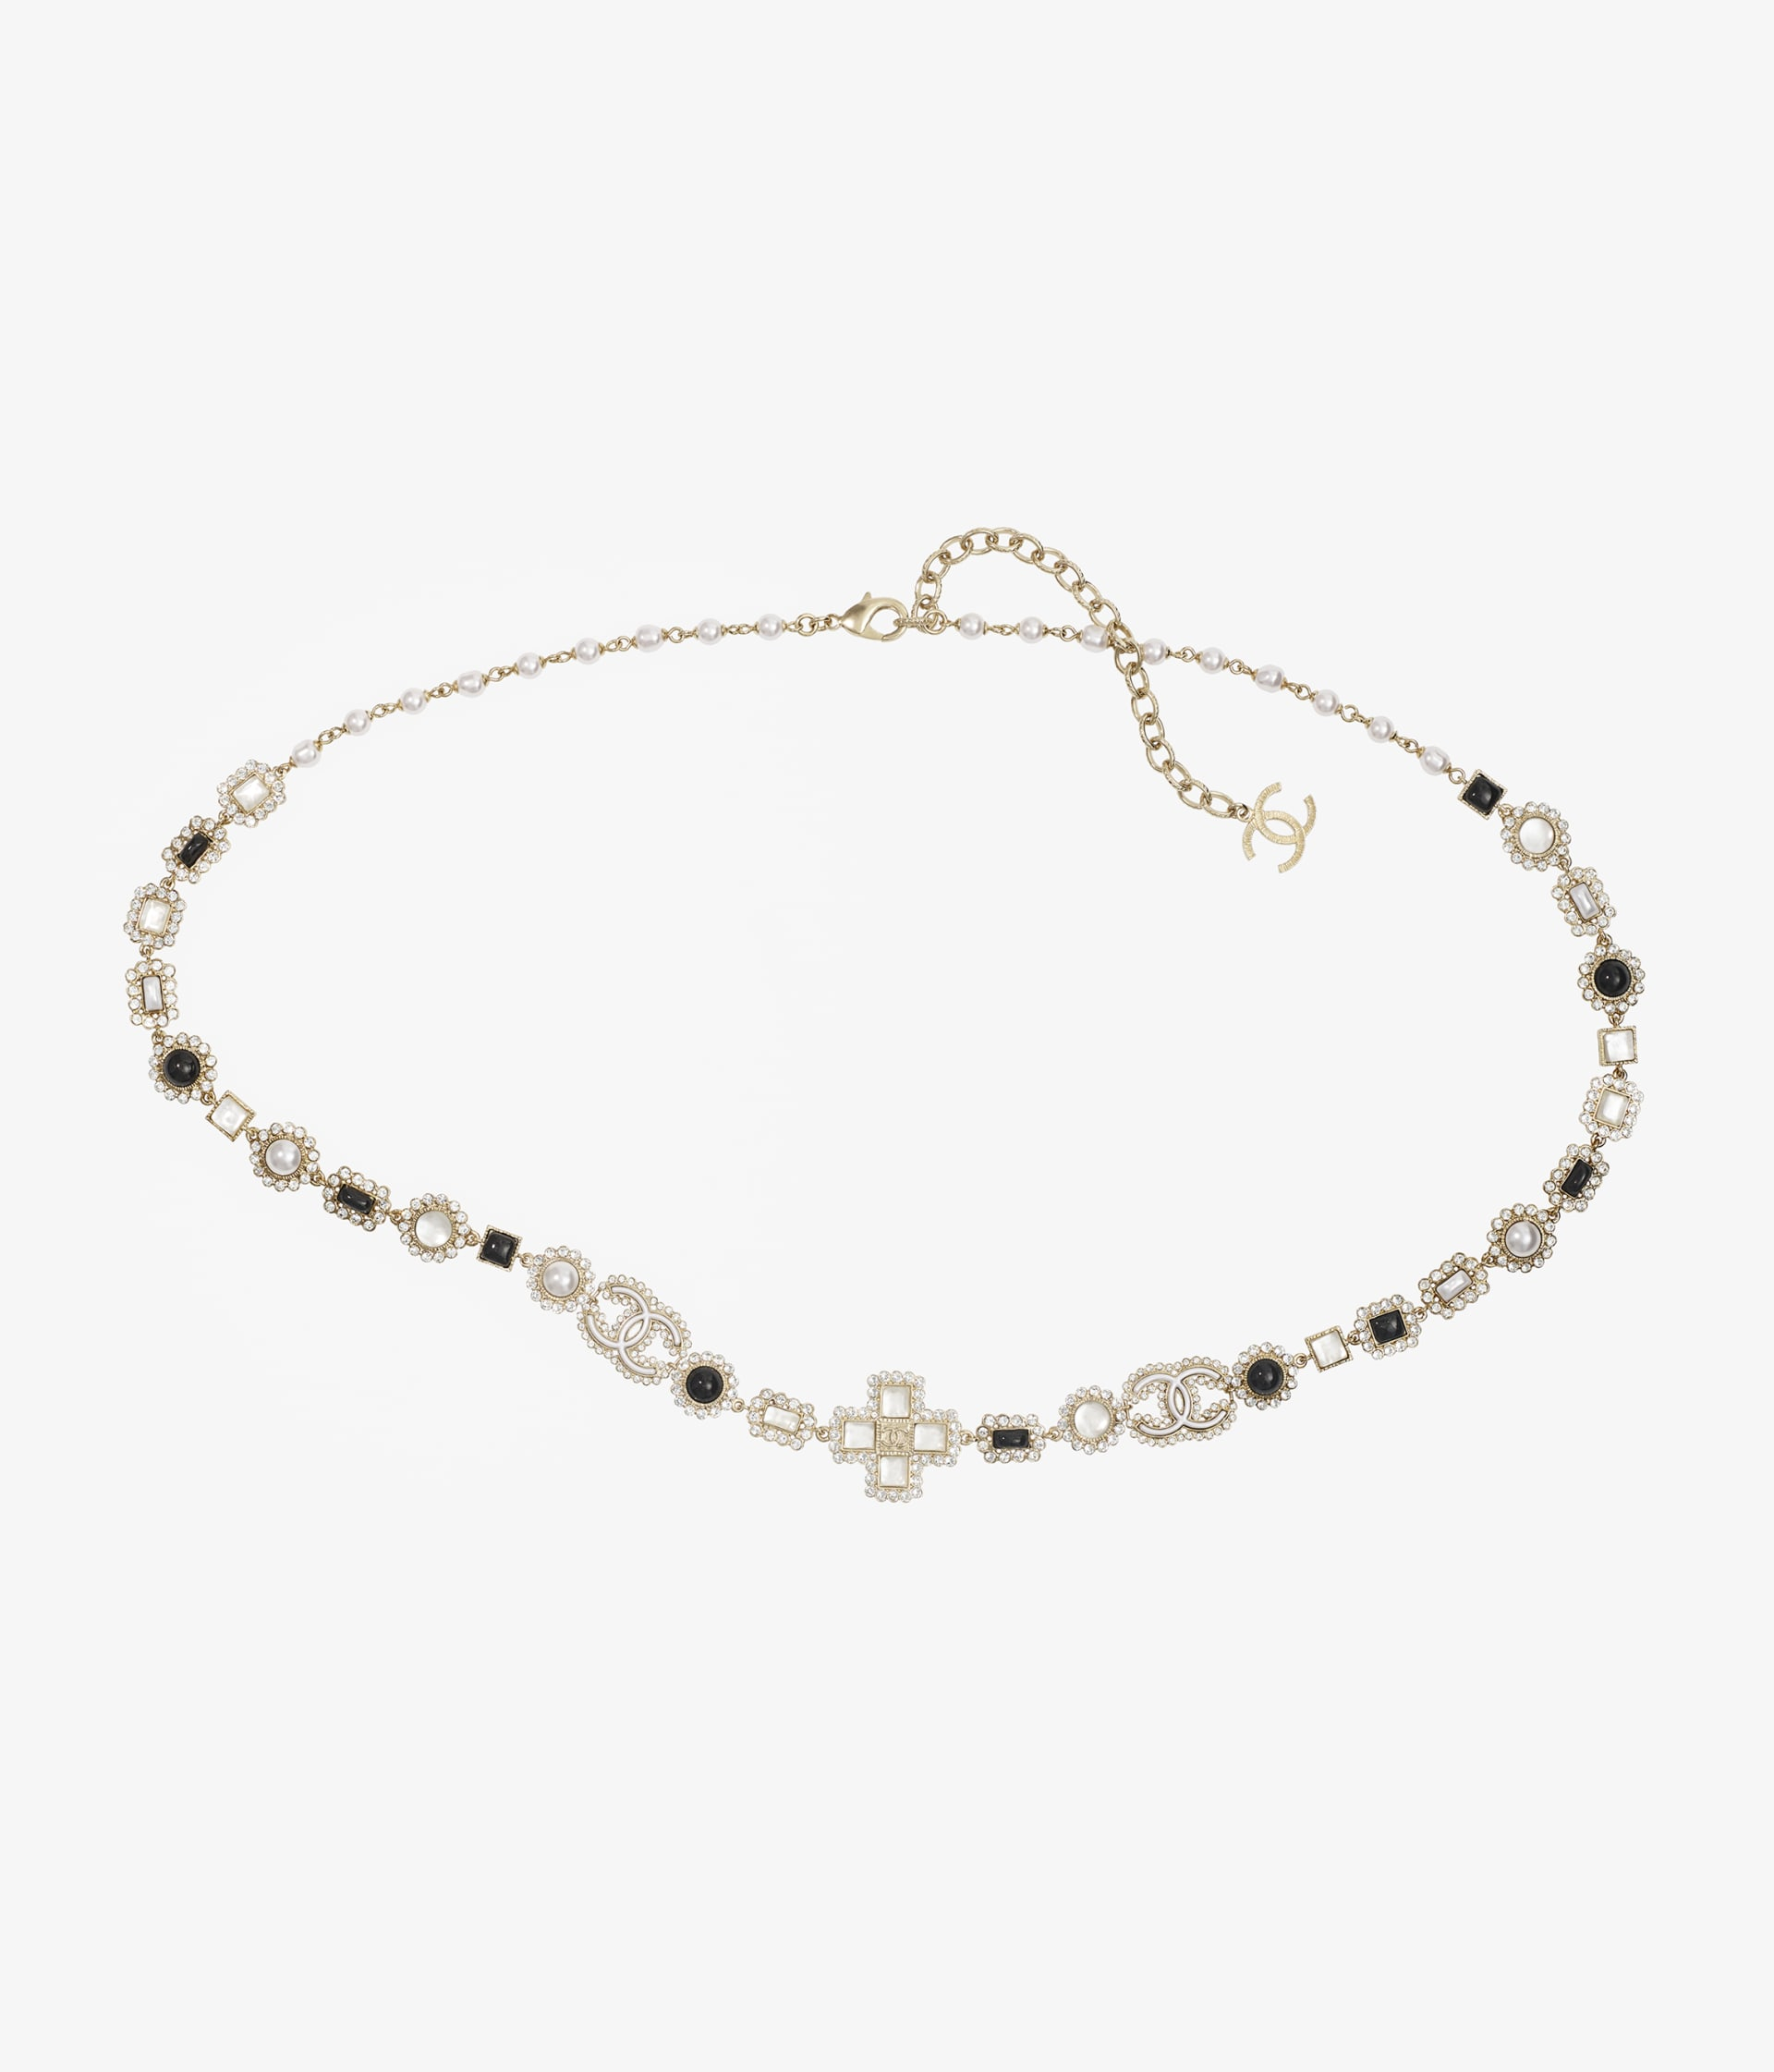 image 1 - Belt - Metal, Glass Pearls, Glass & Strass - Gold, Pearly White, Black & Crystal